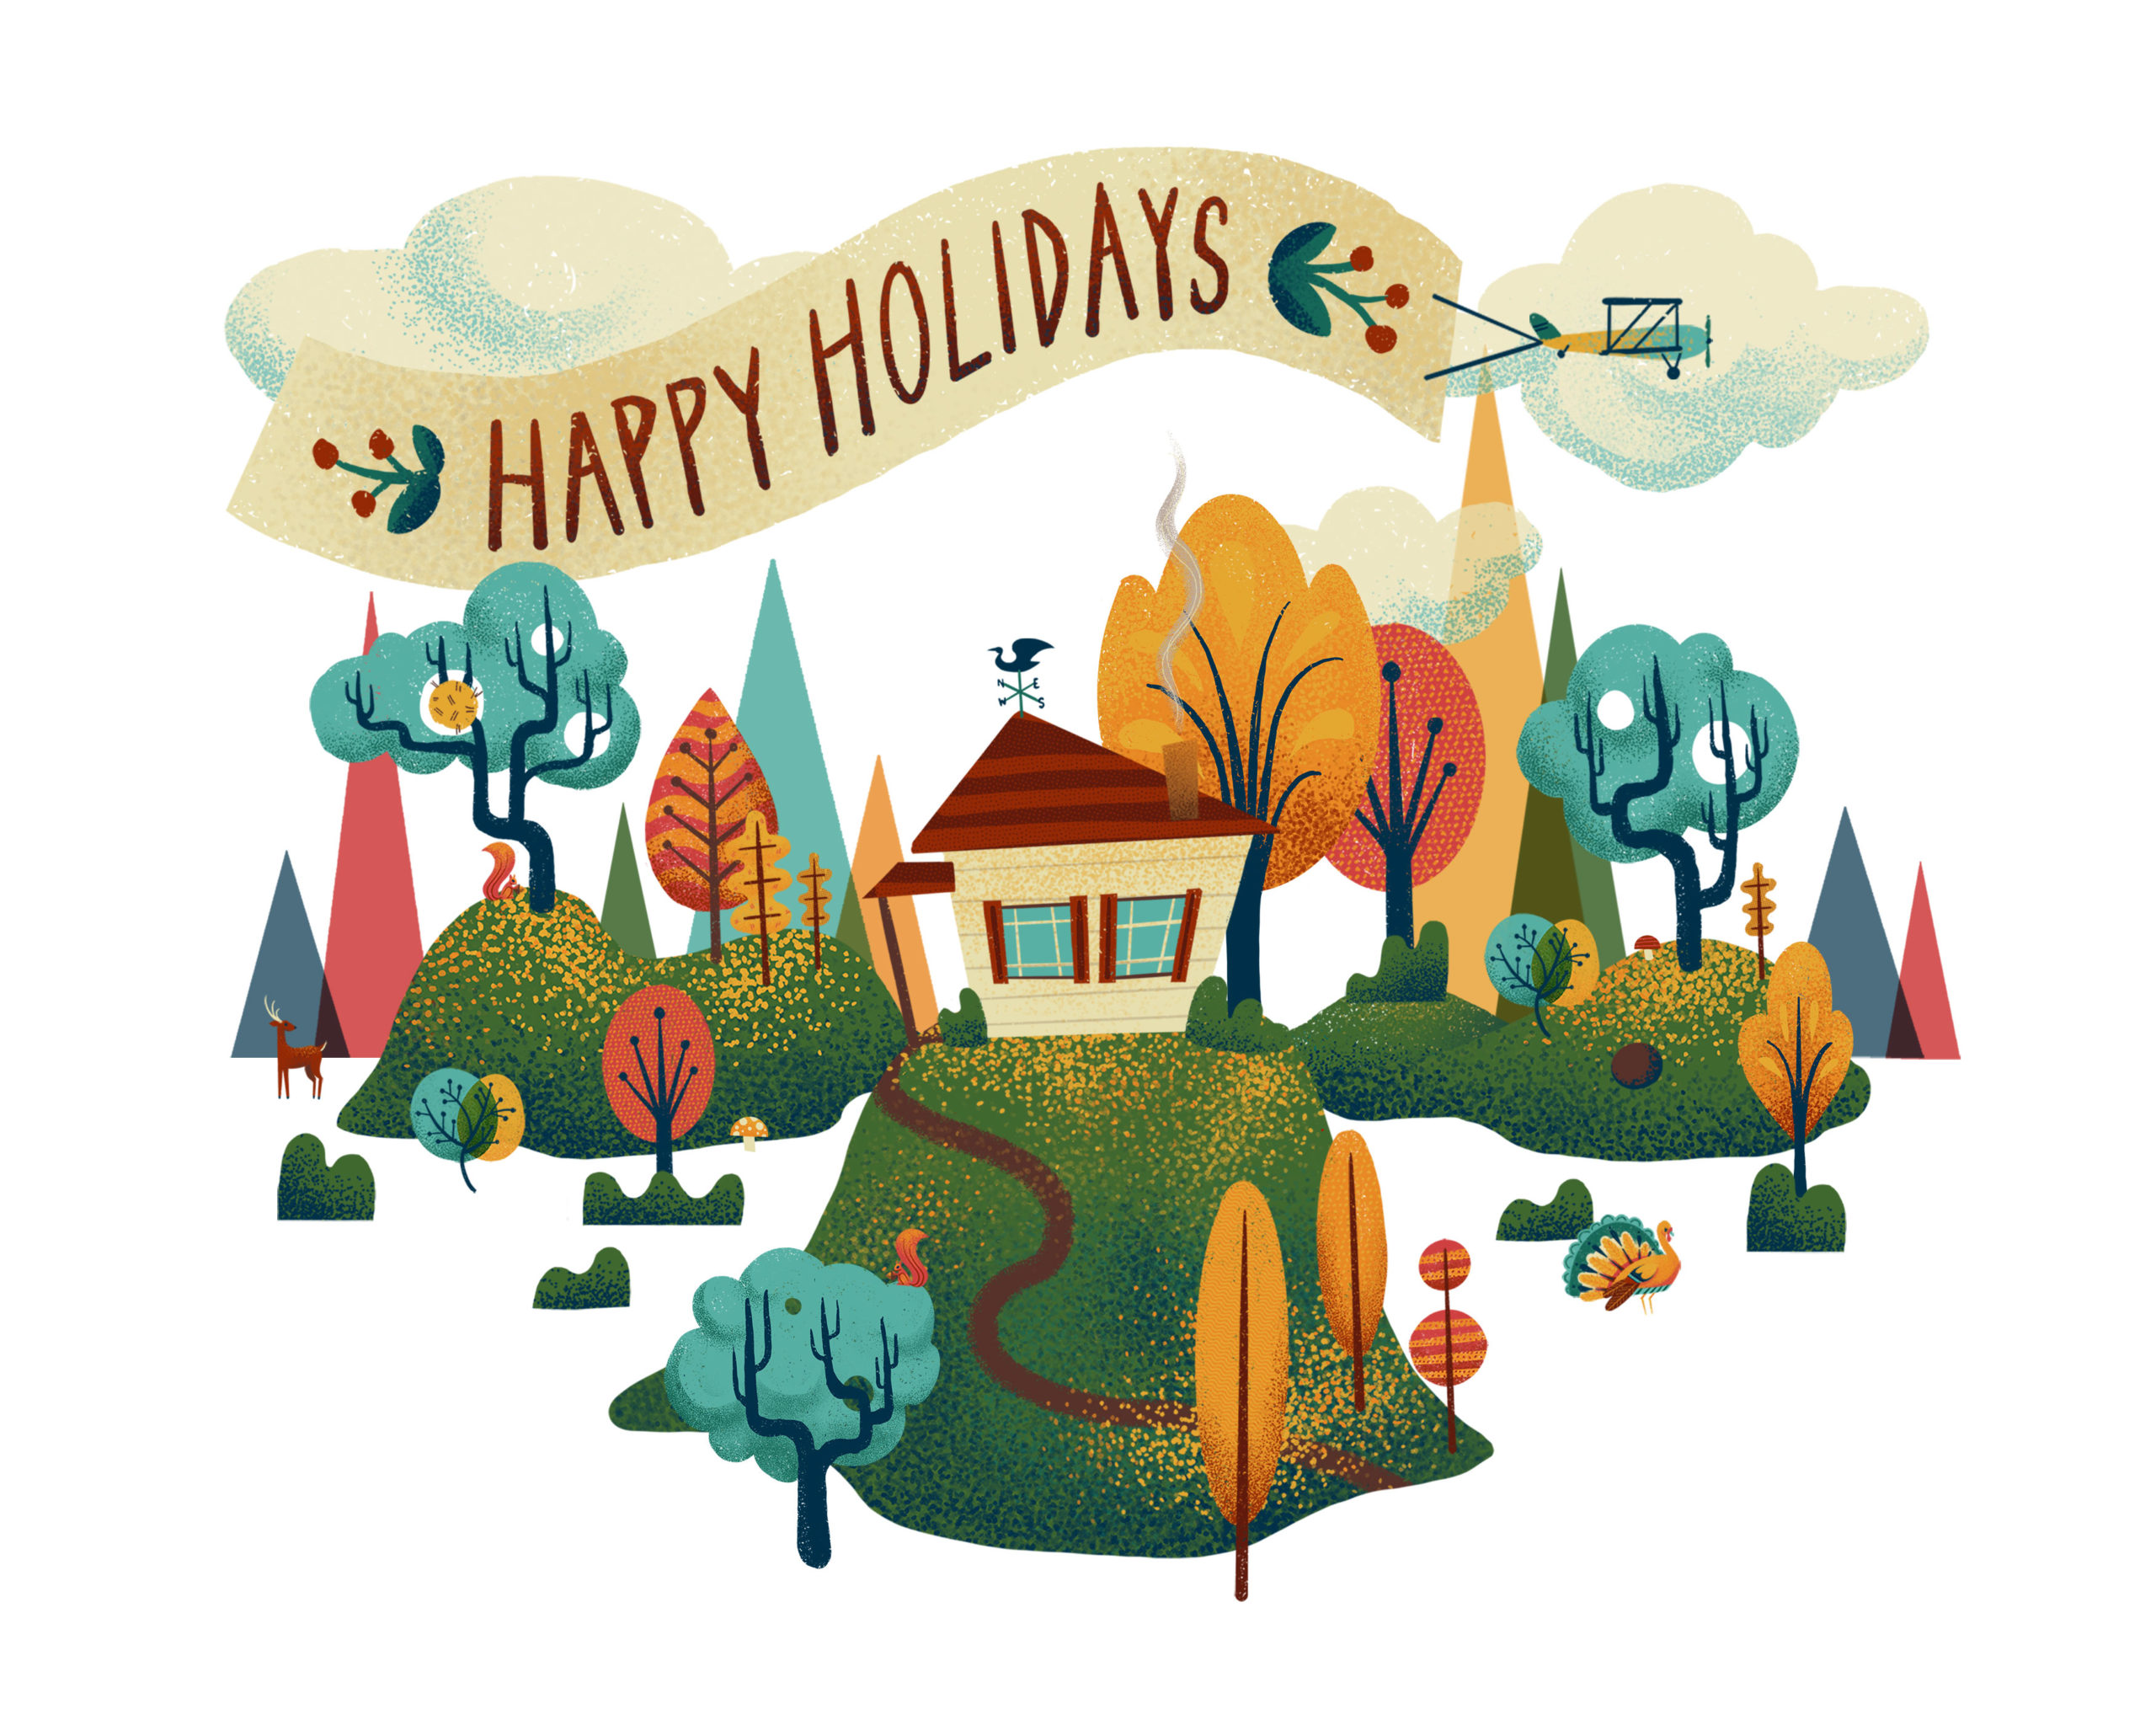 Adobe Aero AR Holiday Card by Dunaway Smith